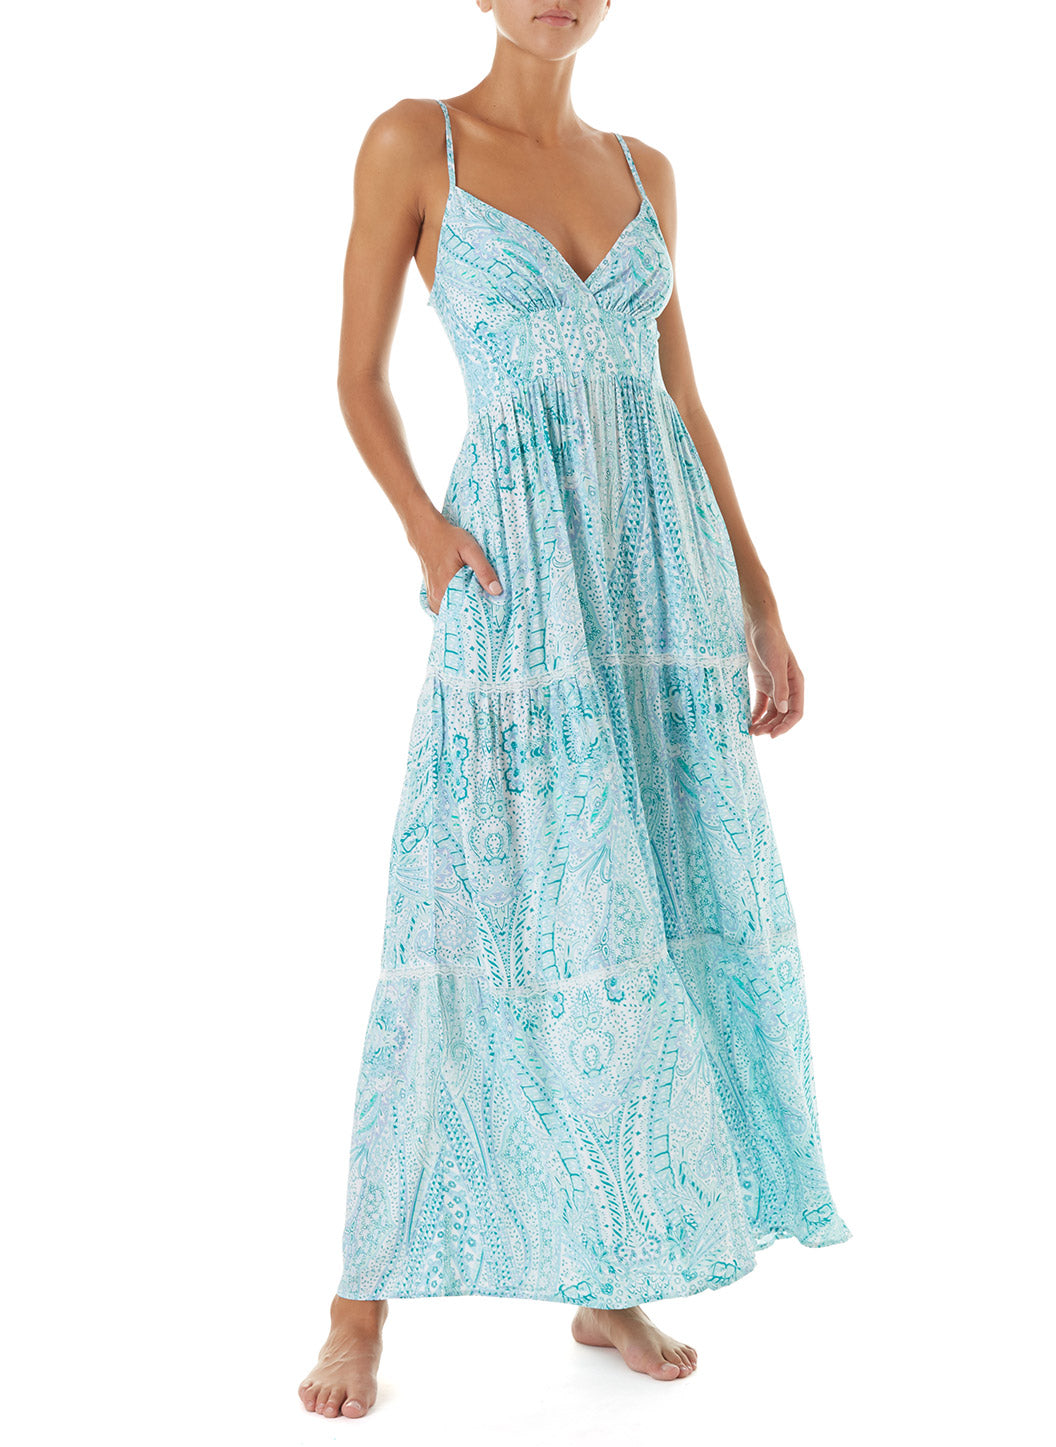 Jamie Paisley Empireline Maxi Dress  - Melissa Odabash New Arrivals